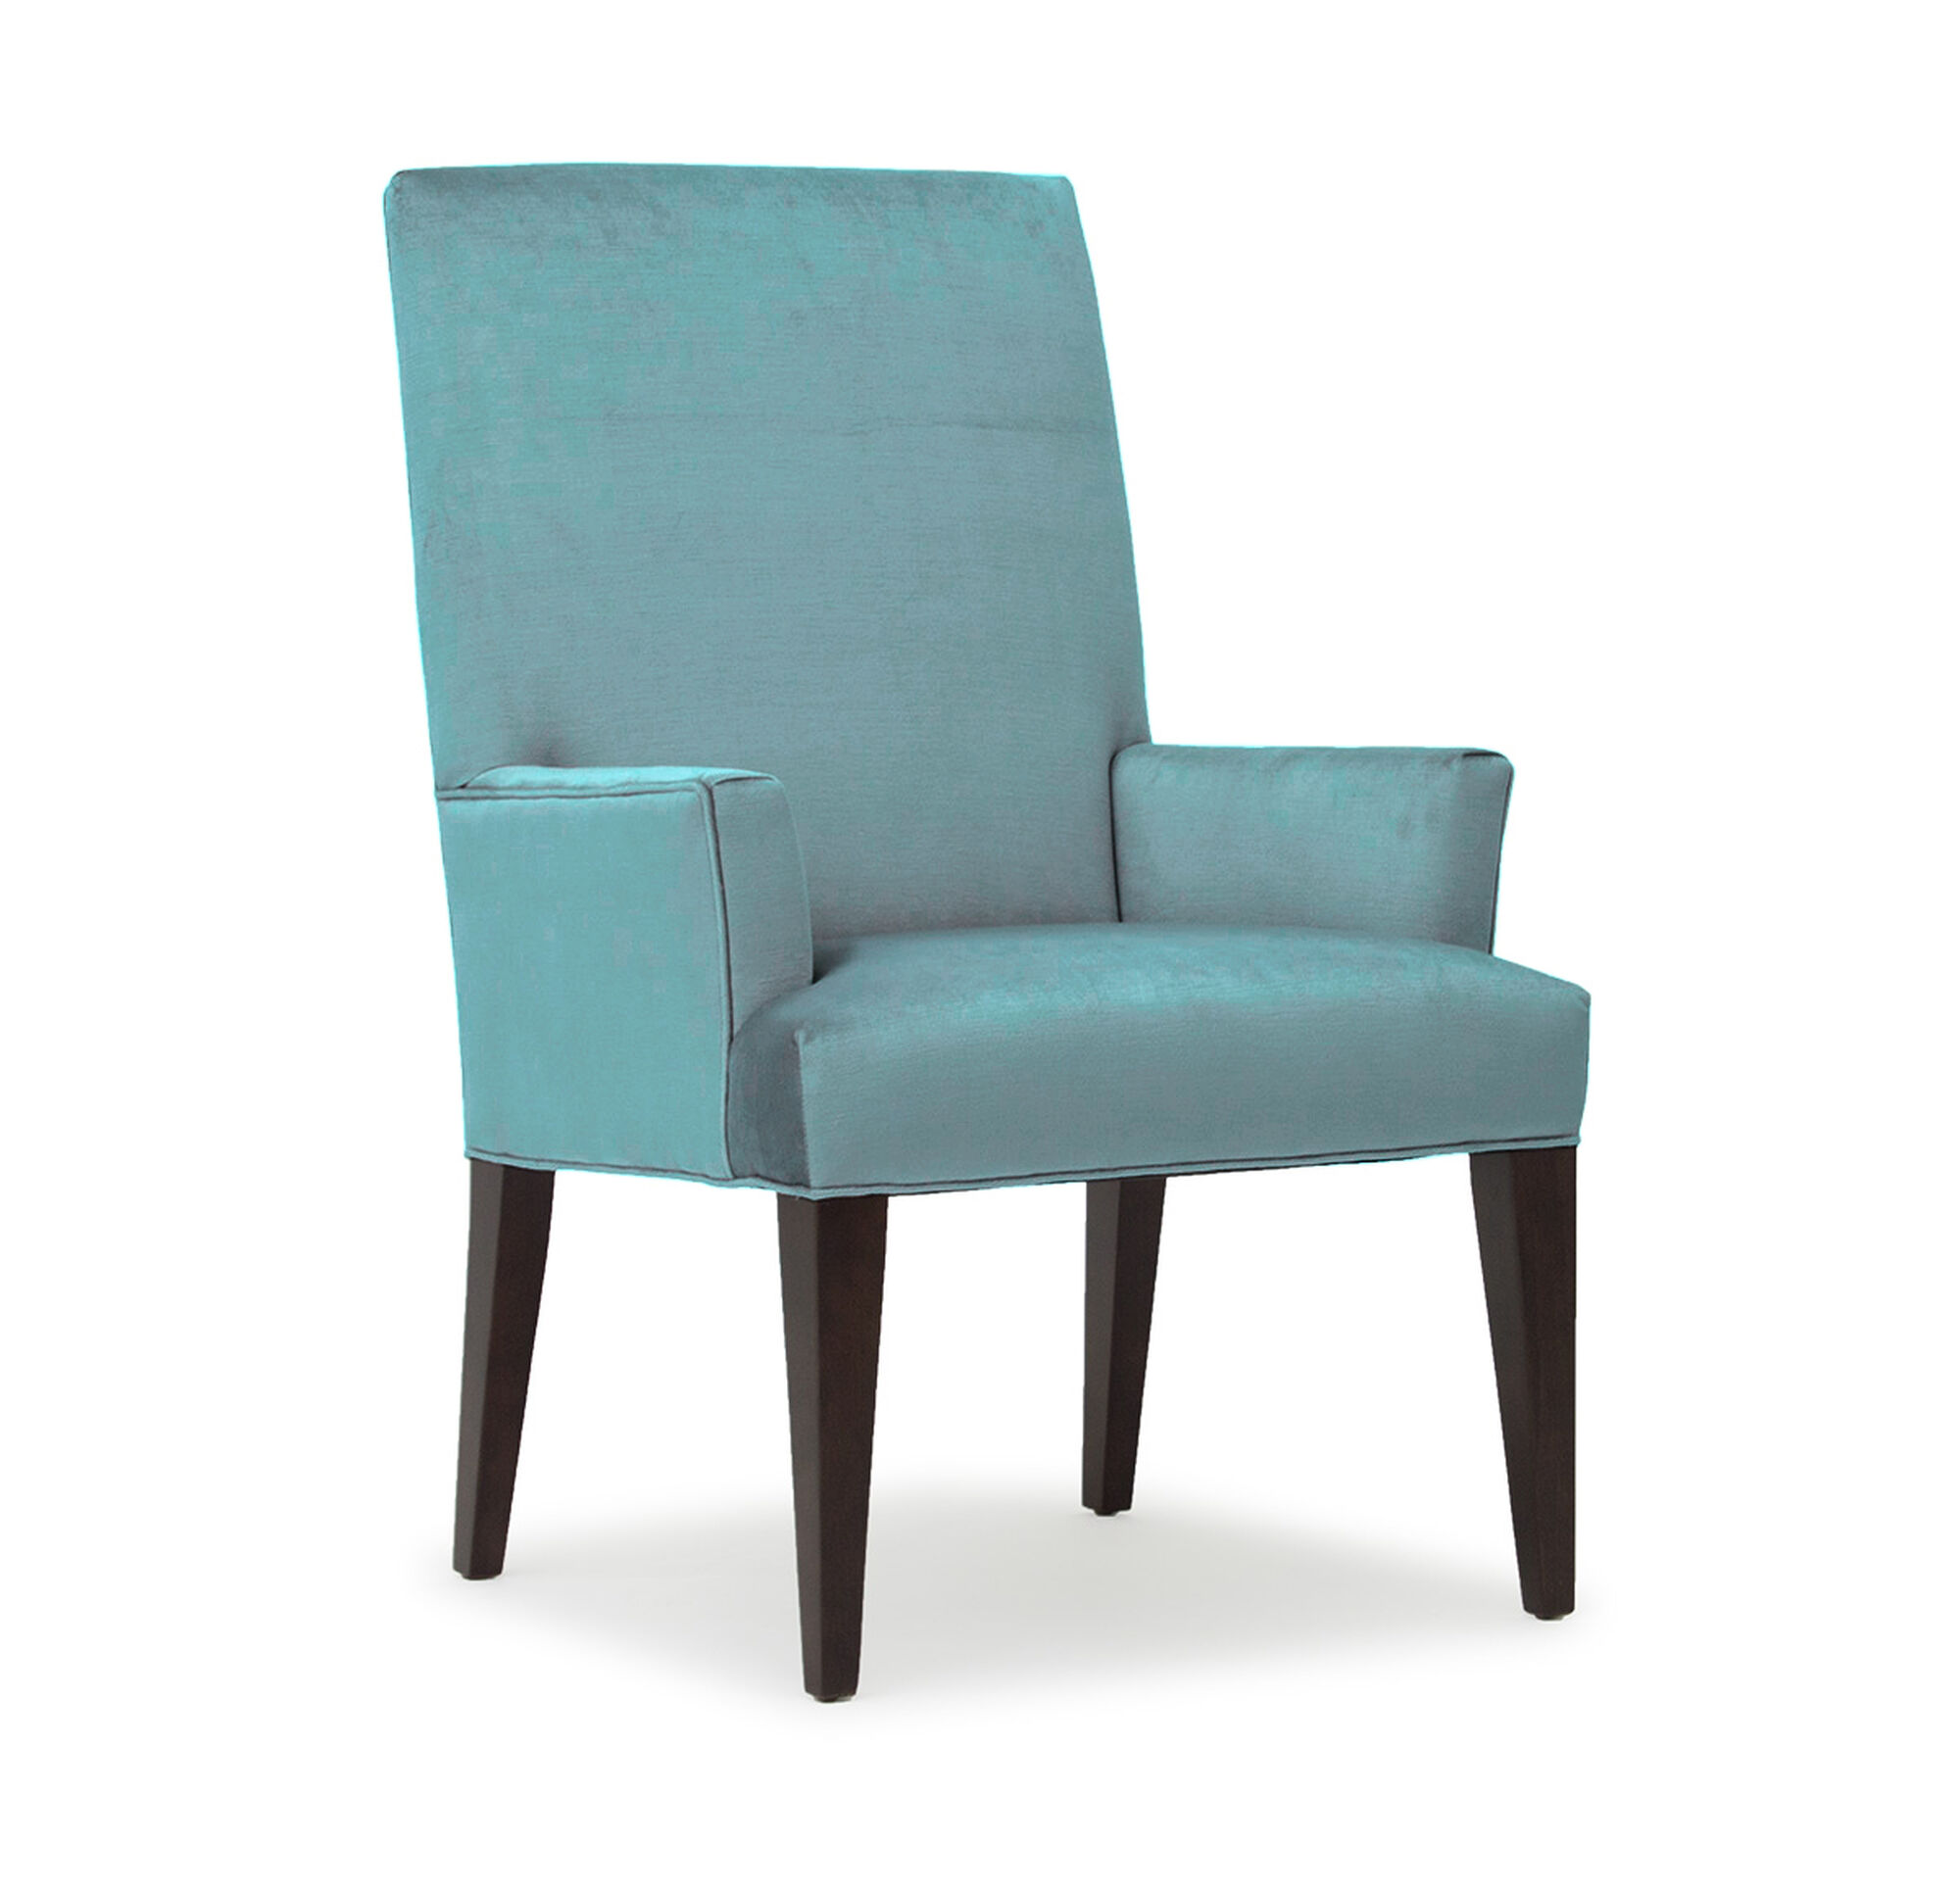 Teal Chair Anthony Tall Arm Dining Chair